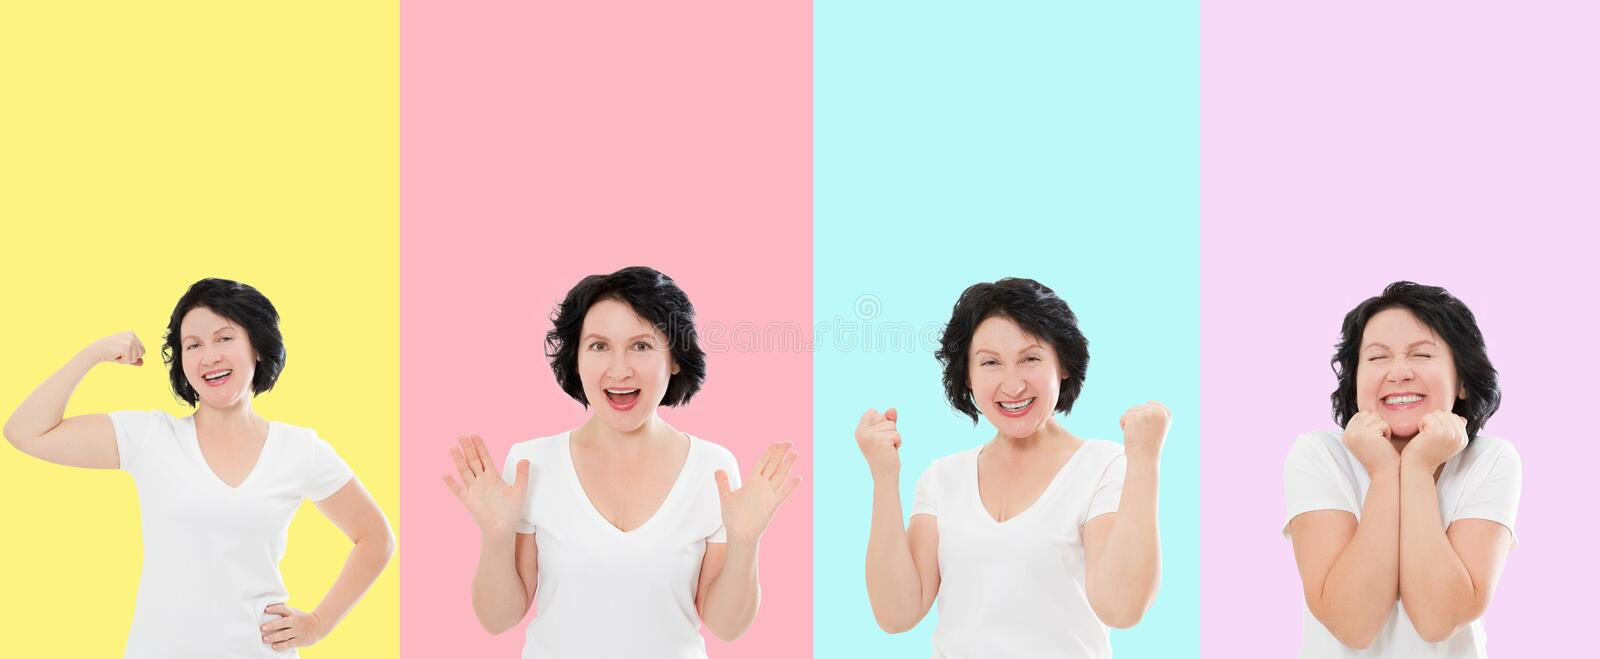 Set of surprised shocked excited asian woman face isolated on colorful background. Middle age female in summer t shirt. Copy space royalty free stock photography